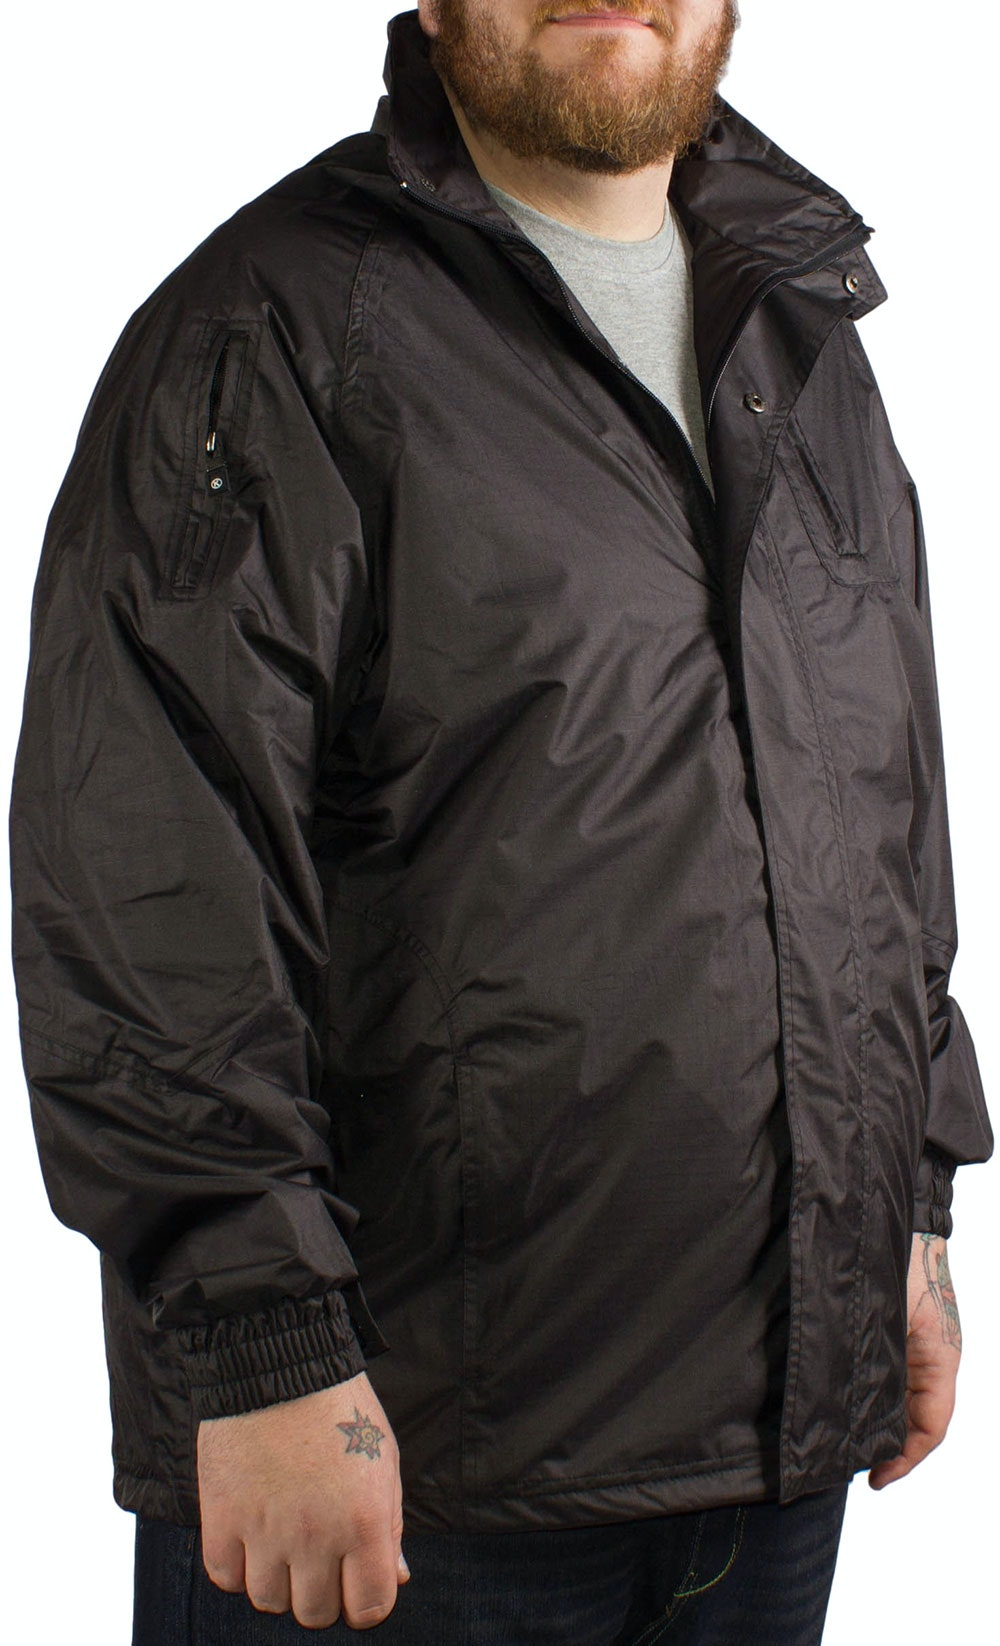 KAM Black Waterproof Rain Jacket